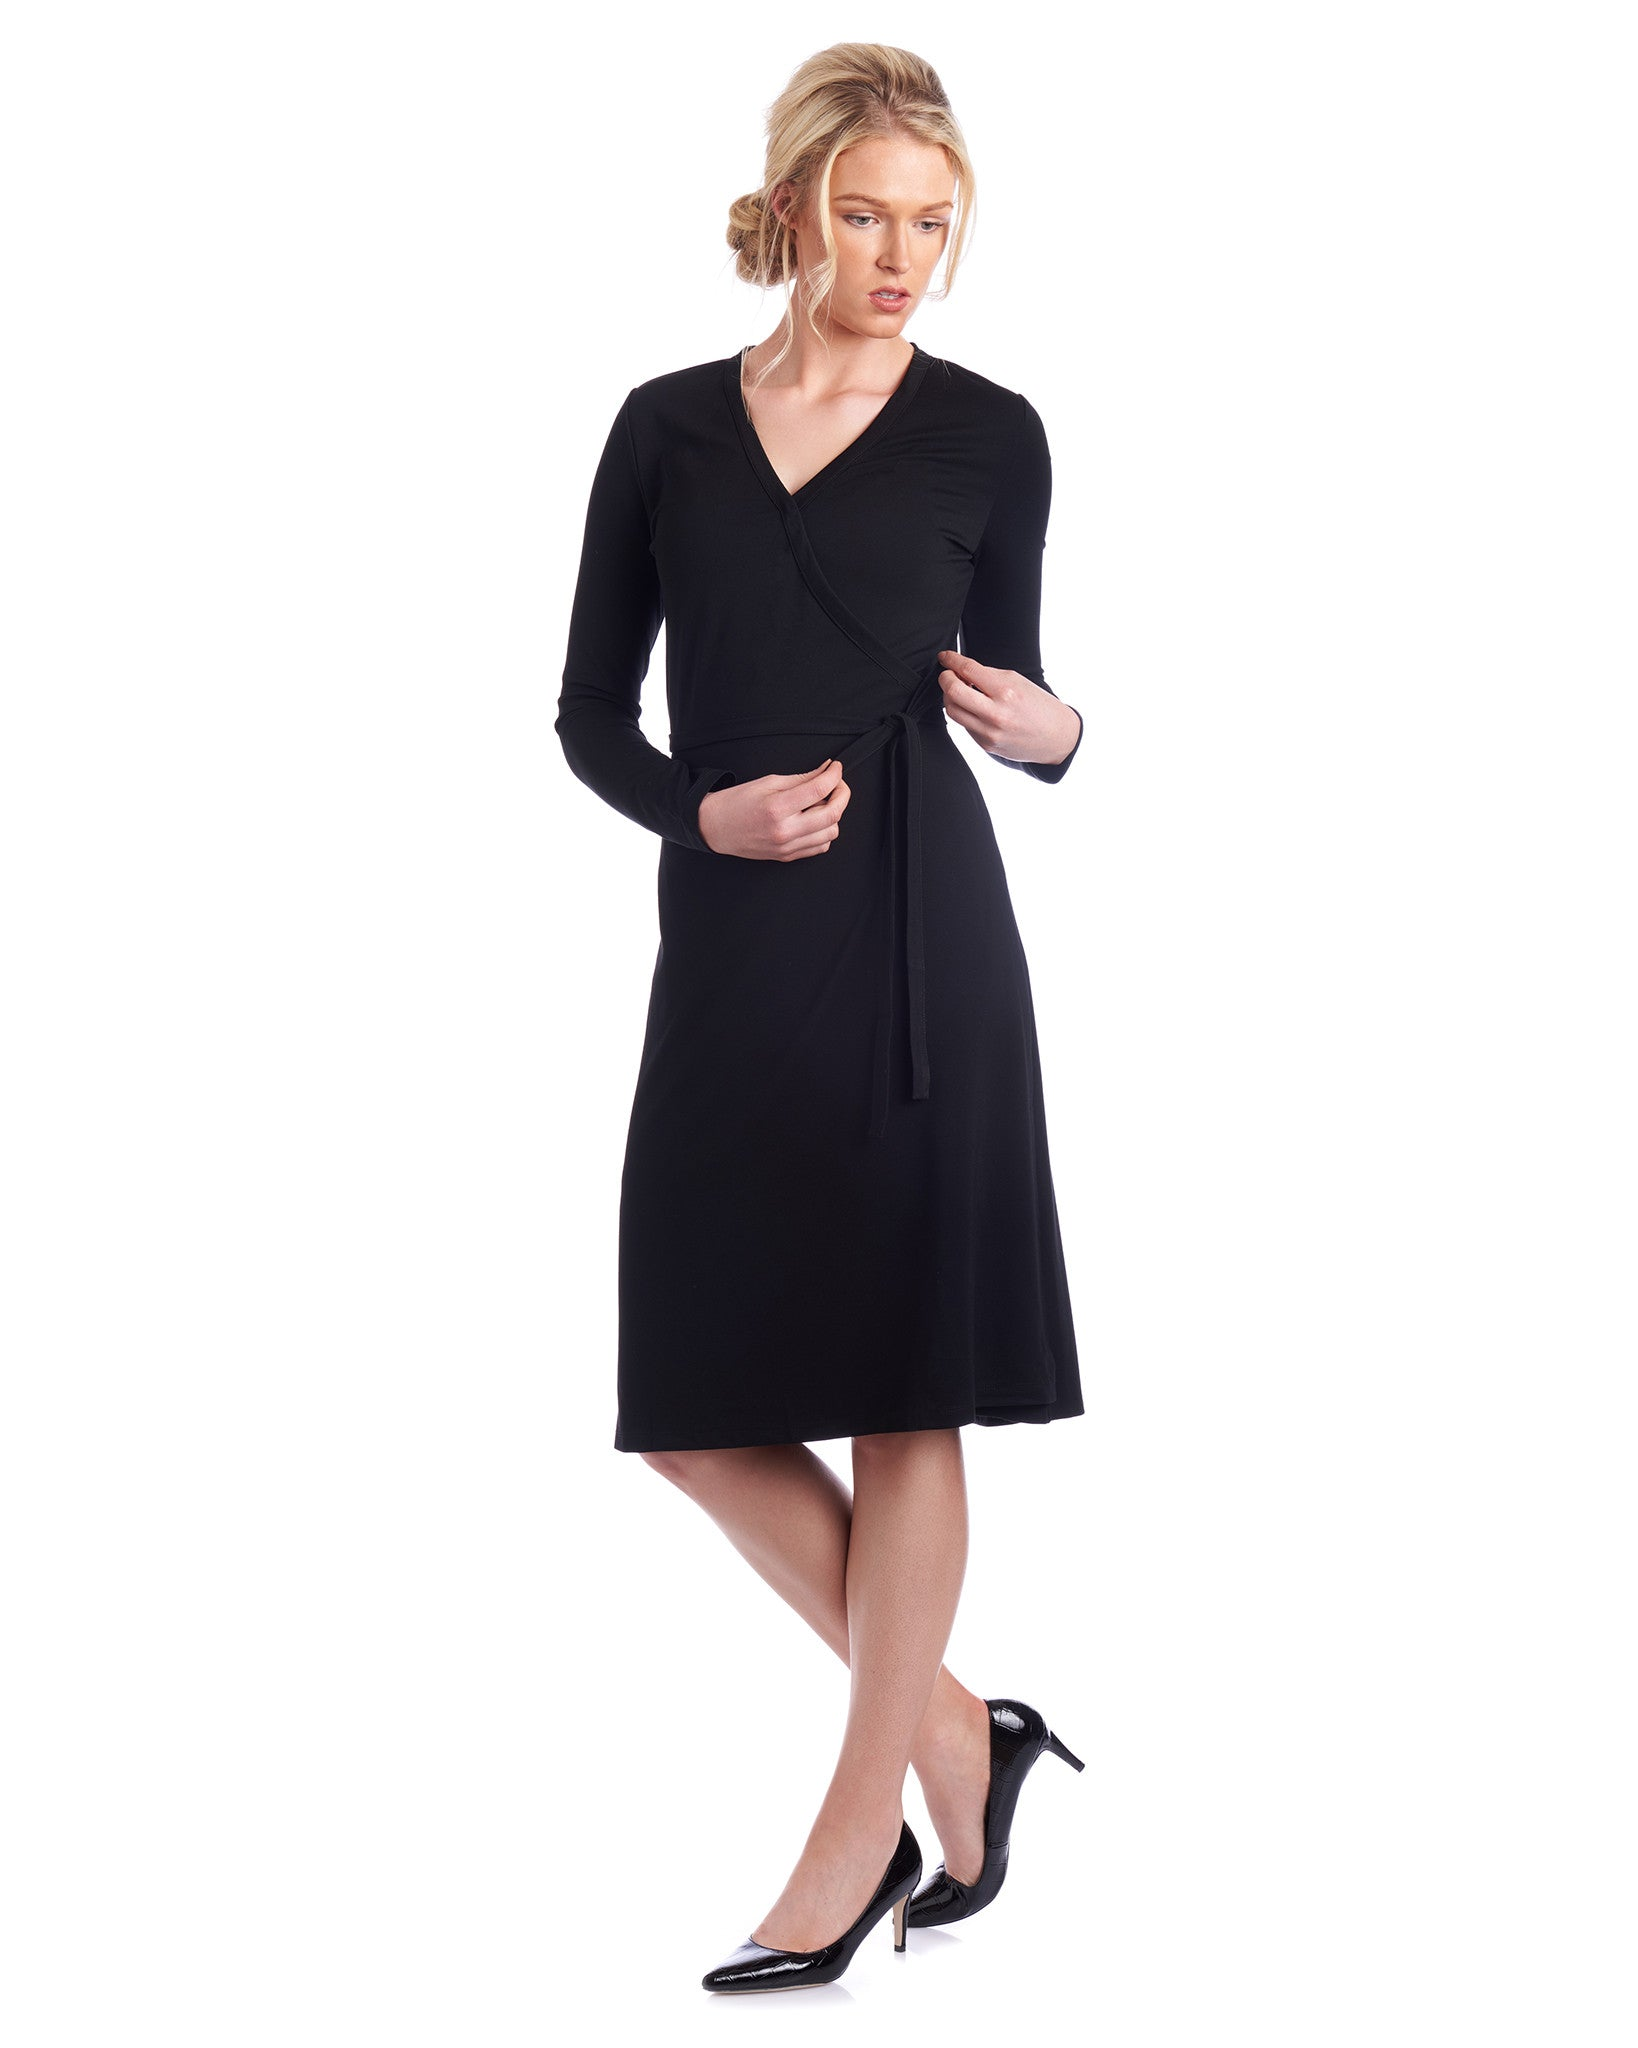 Black wrap dress in an a-line skirt, the perfect Tahlo dress to wear anywhere